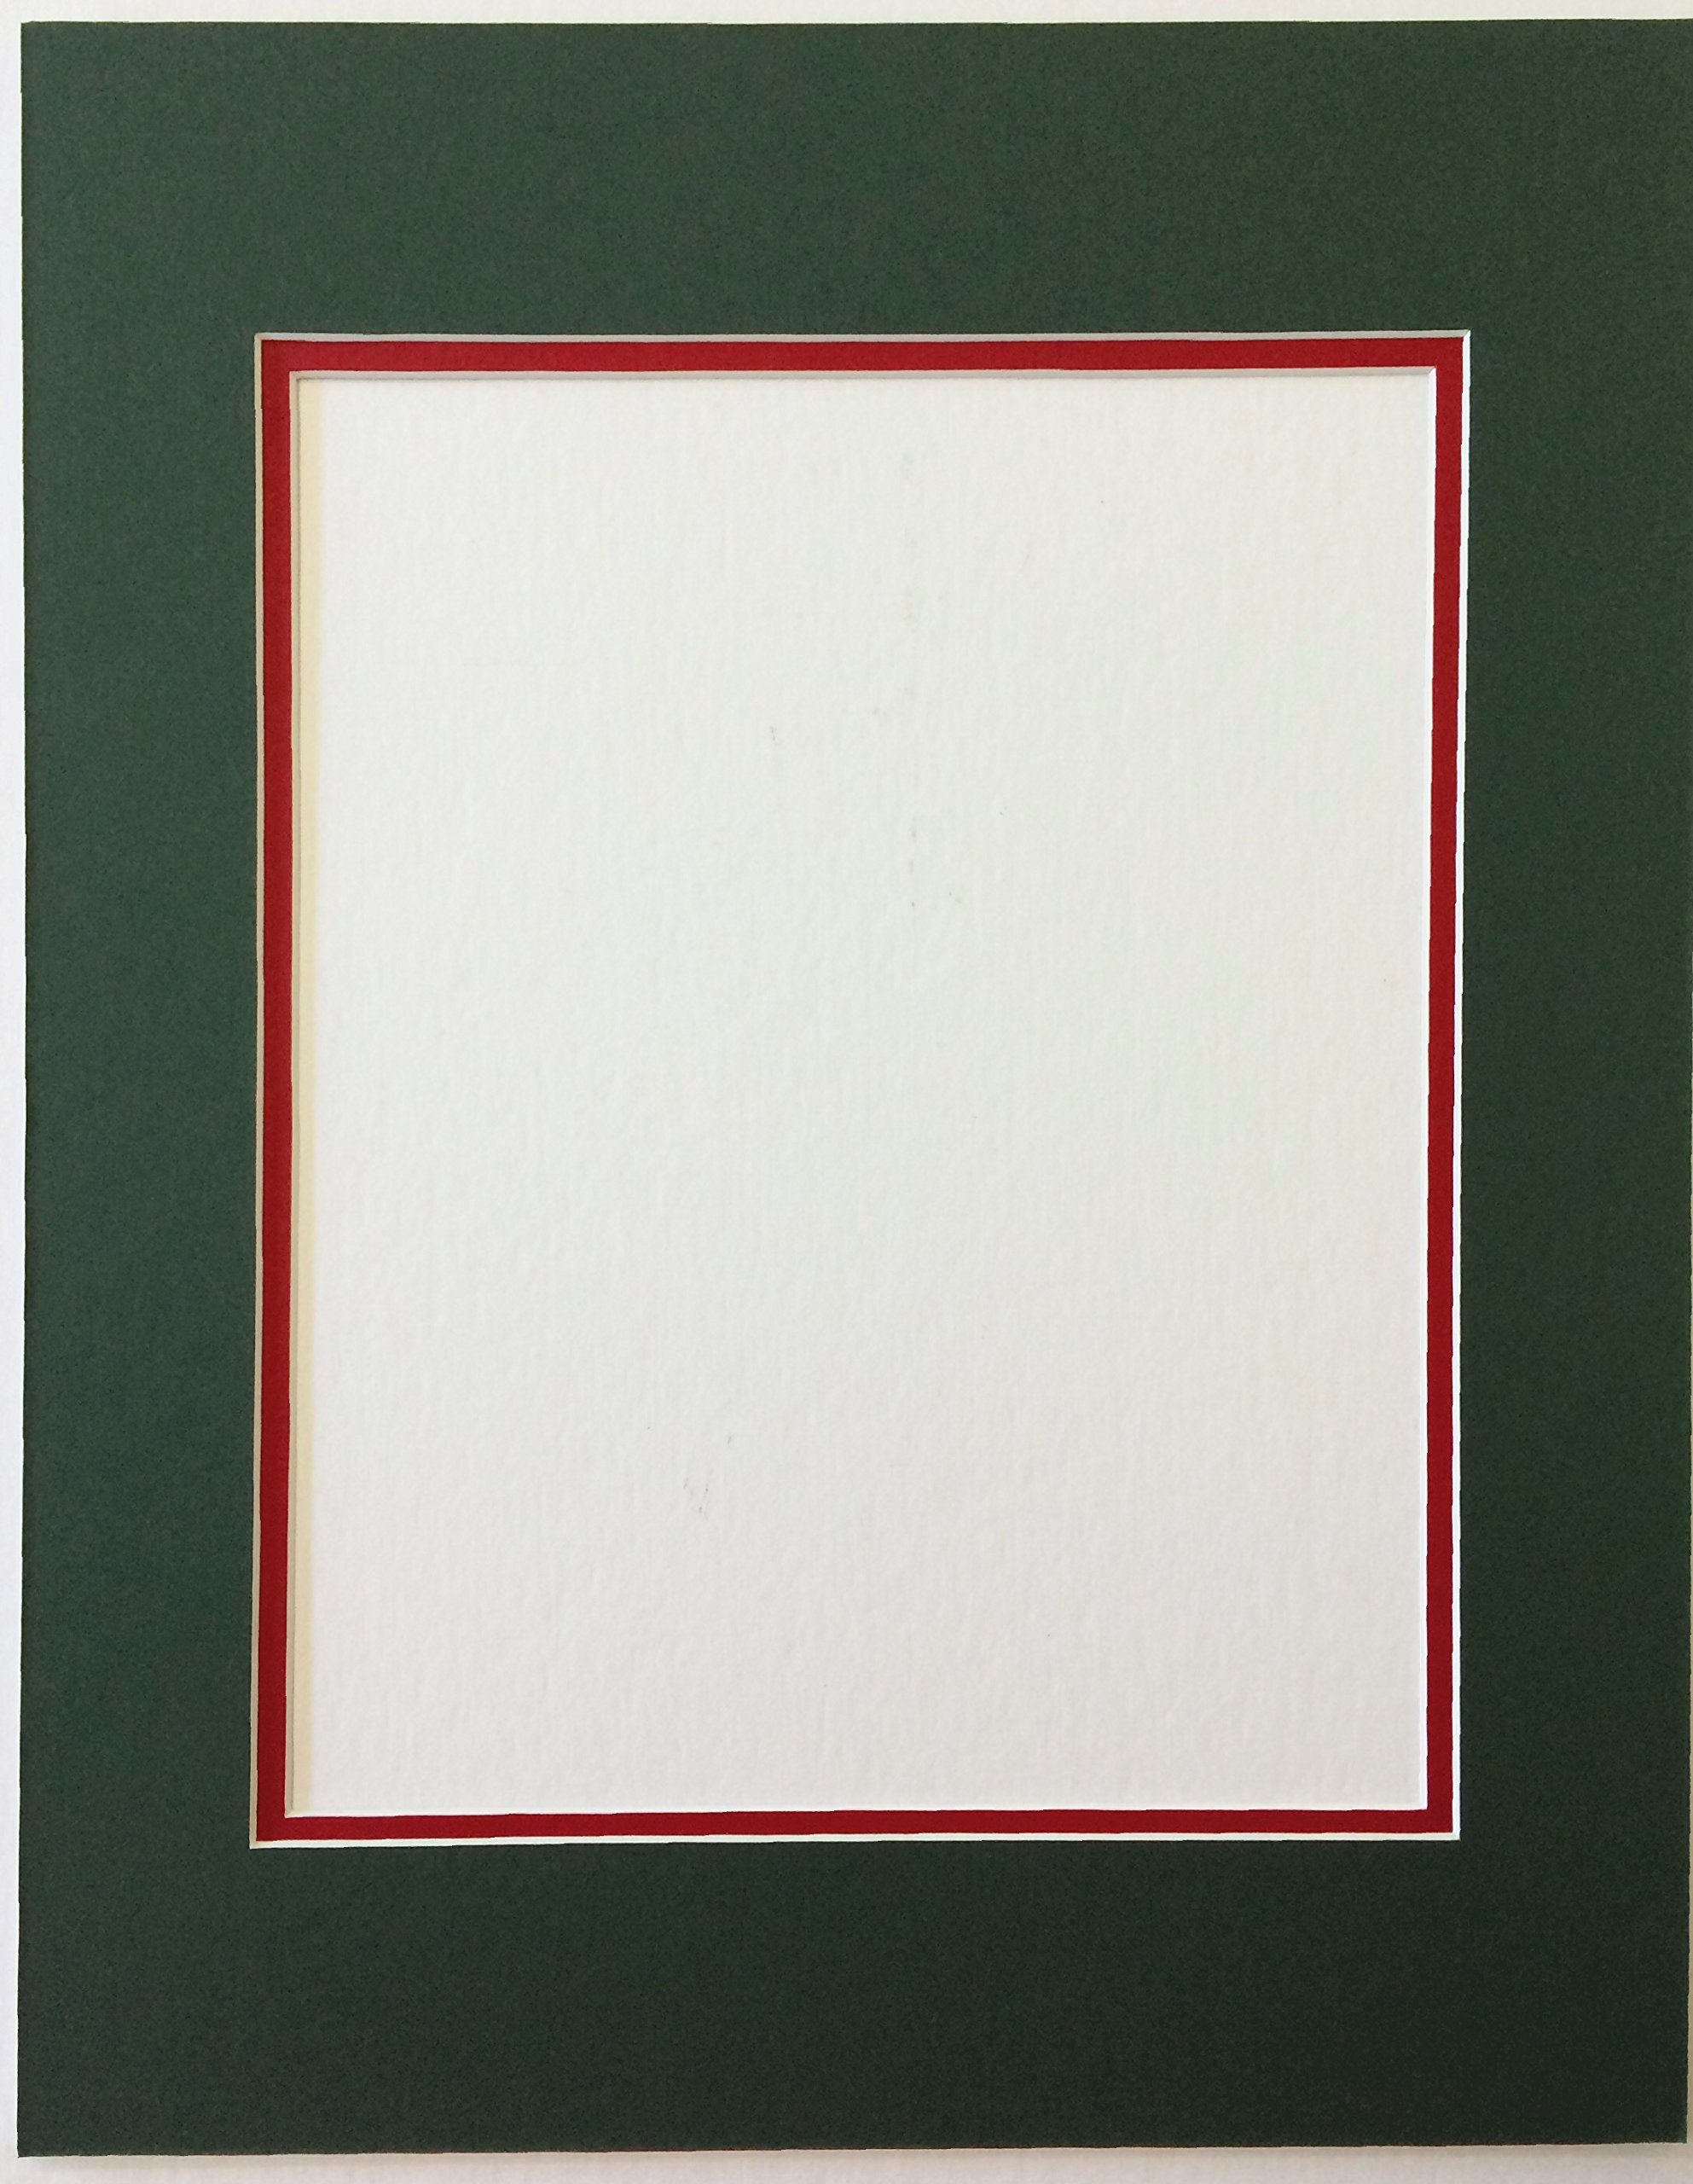 Pack of 5 11x14 Green and Bright Red Double Picture Mats Cut for 8x10 Pictures by bux1 picture matting